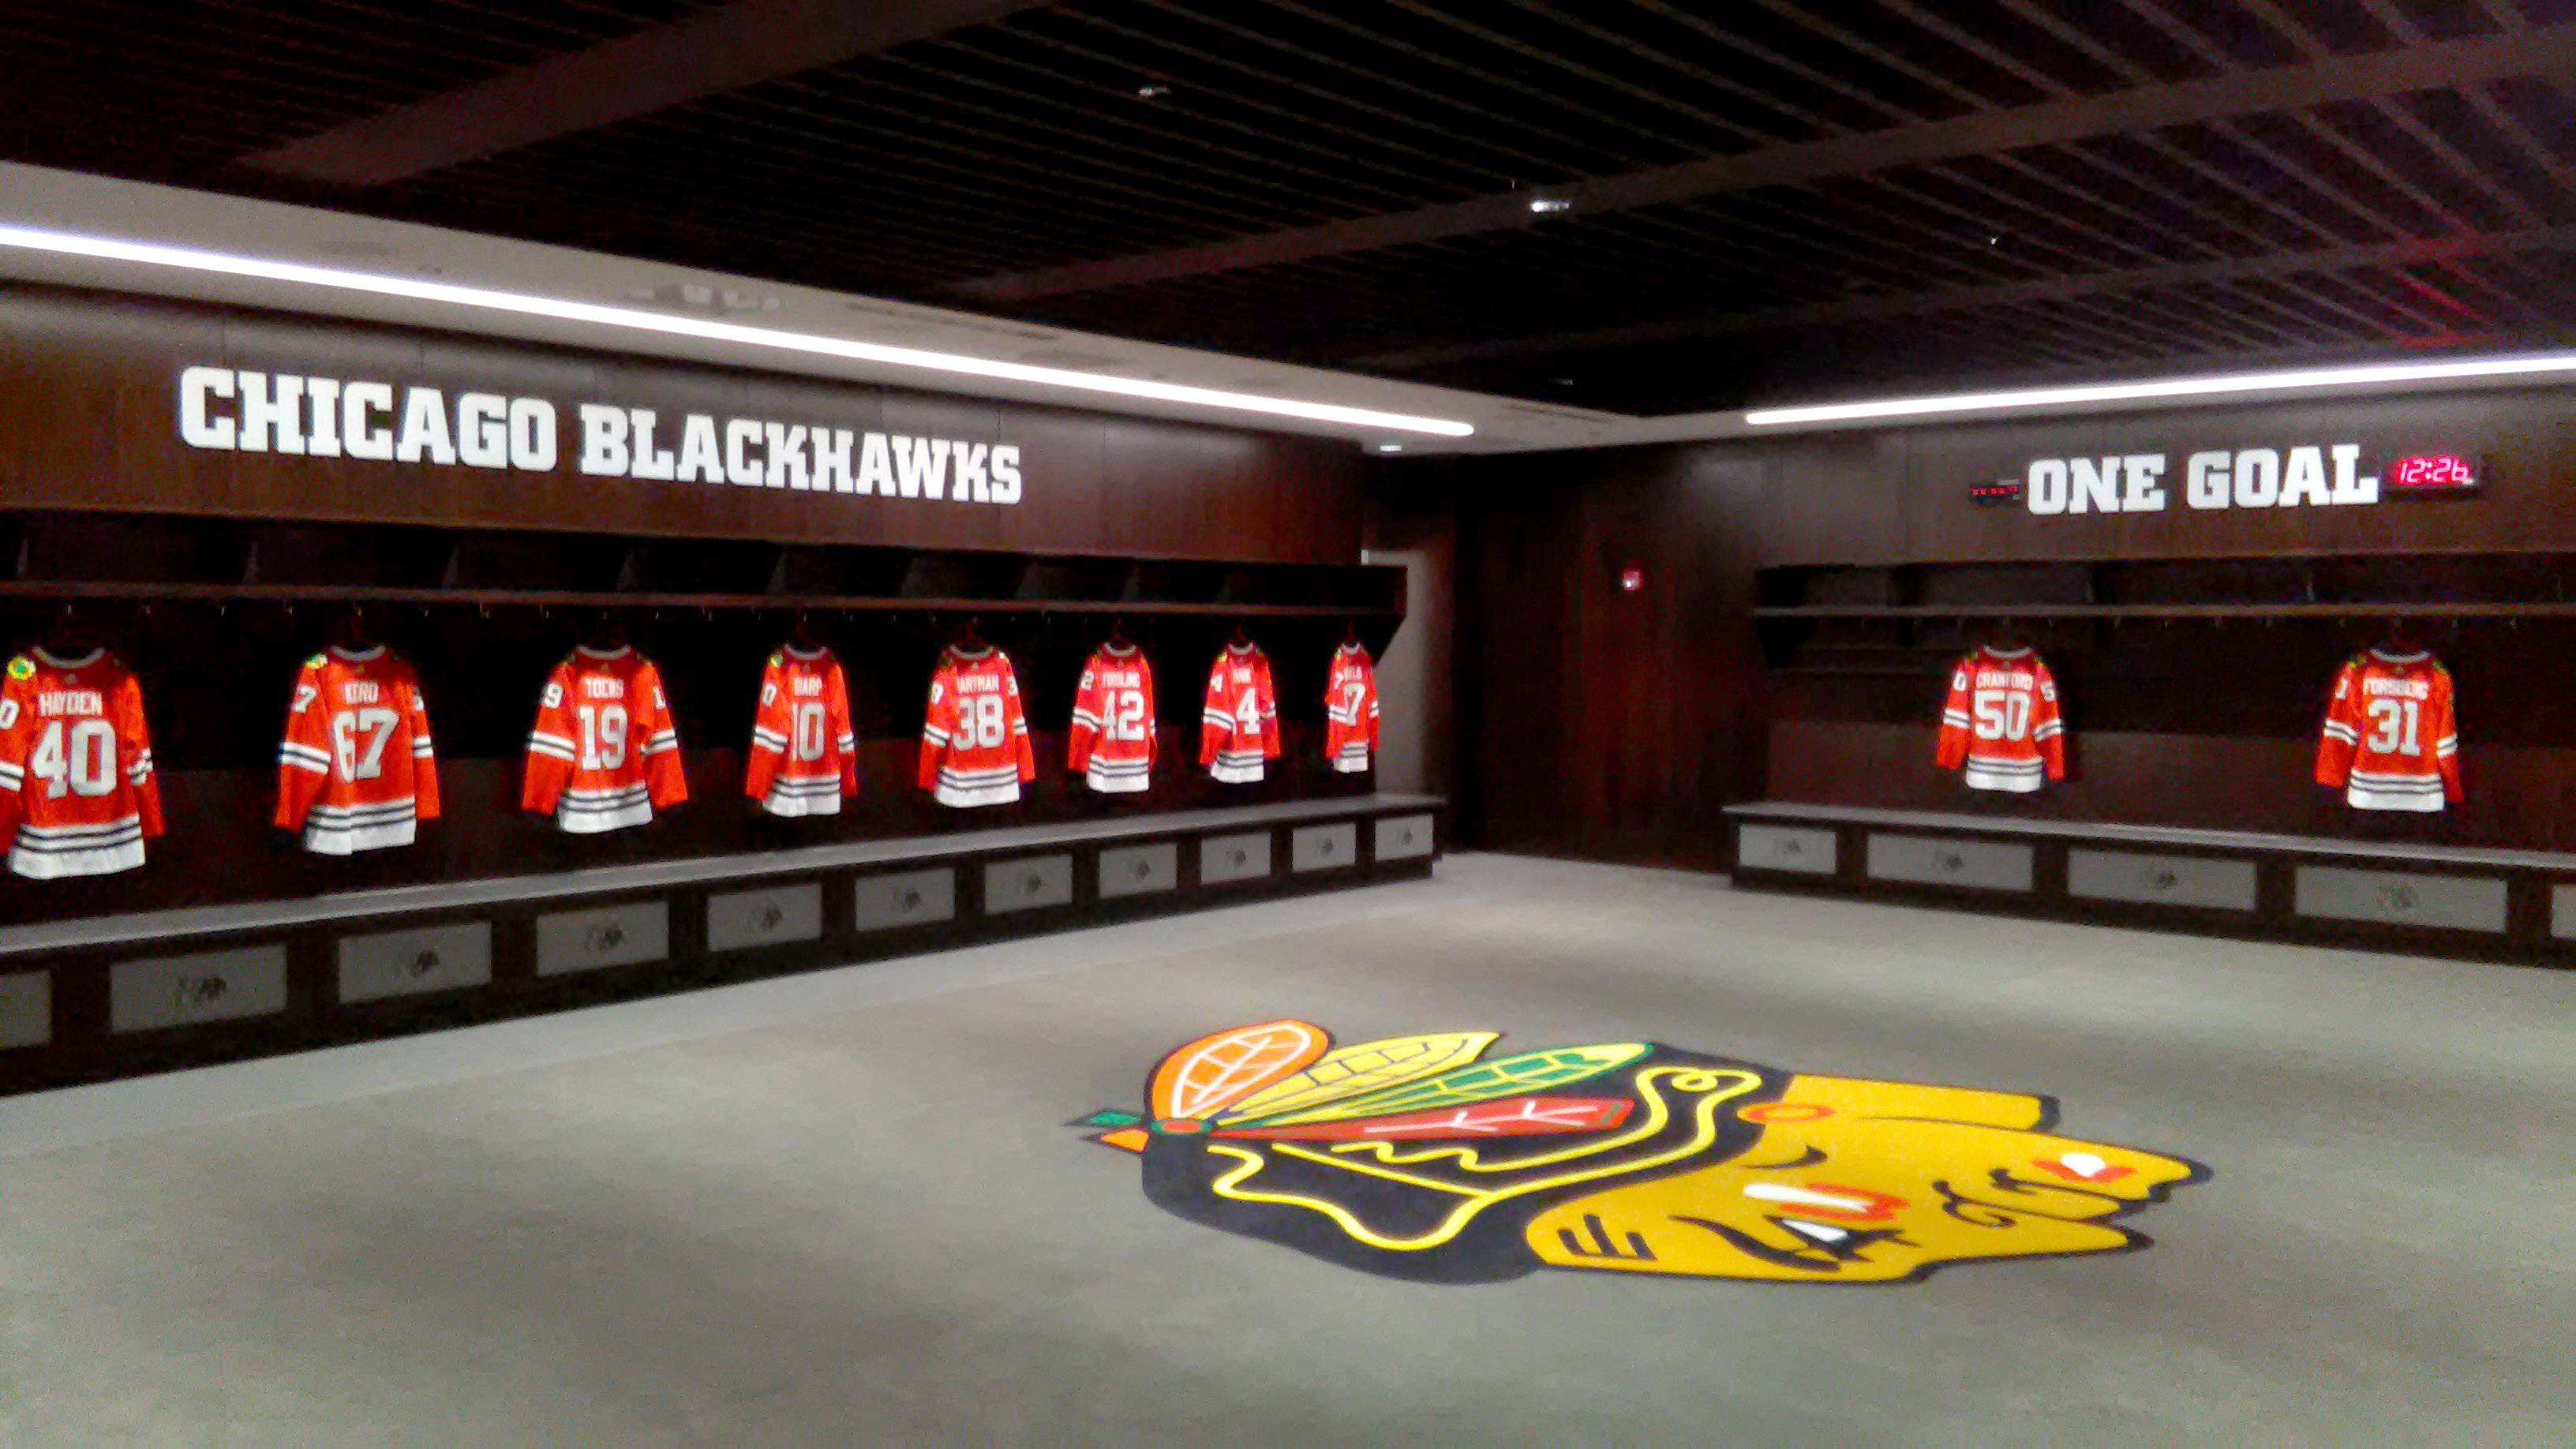 Here's a look at the locker room inside the new Chicago Blackhawks practice facility, MB Ice Arena, located at 1801 W. Jackson Blvd.